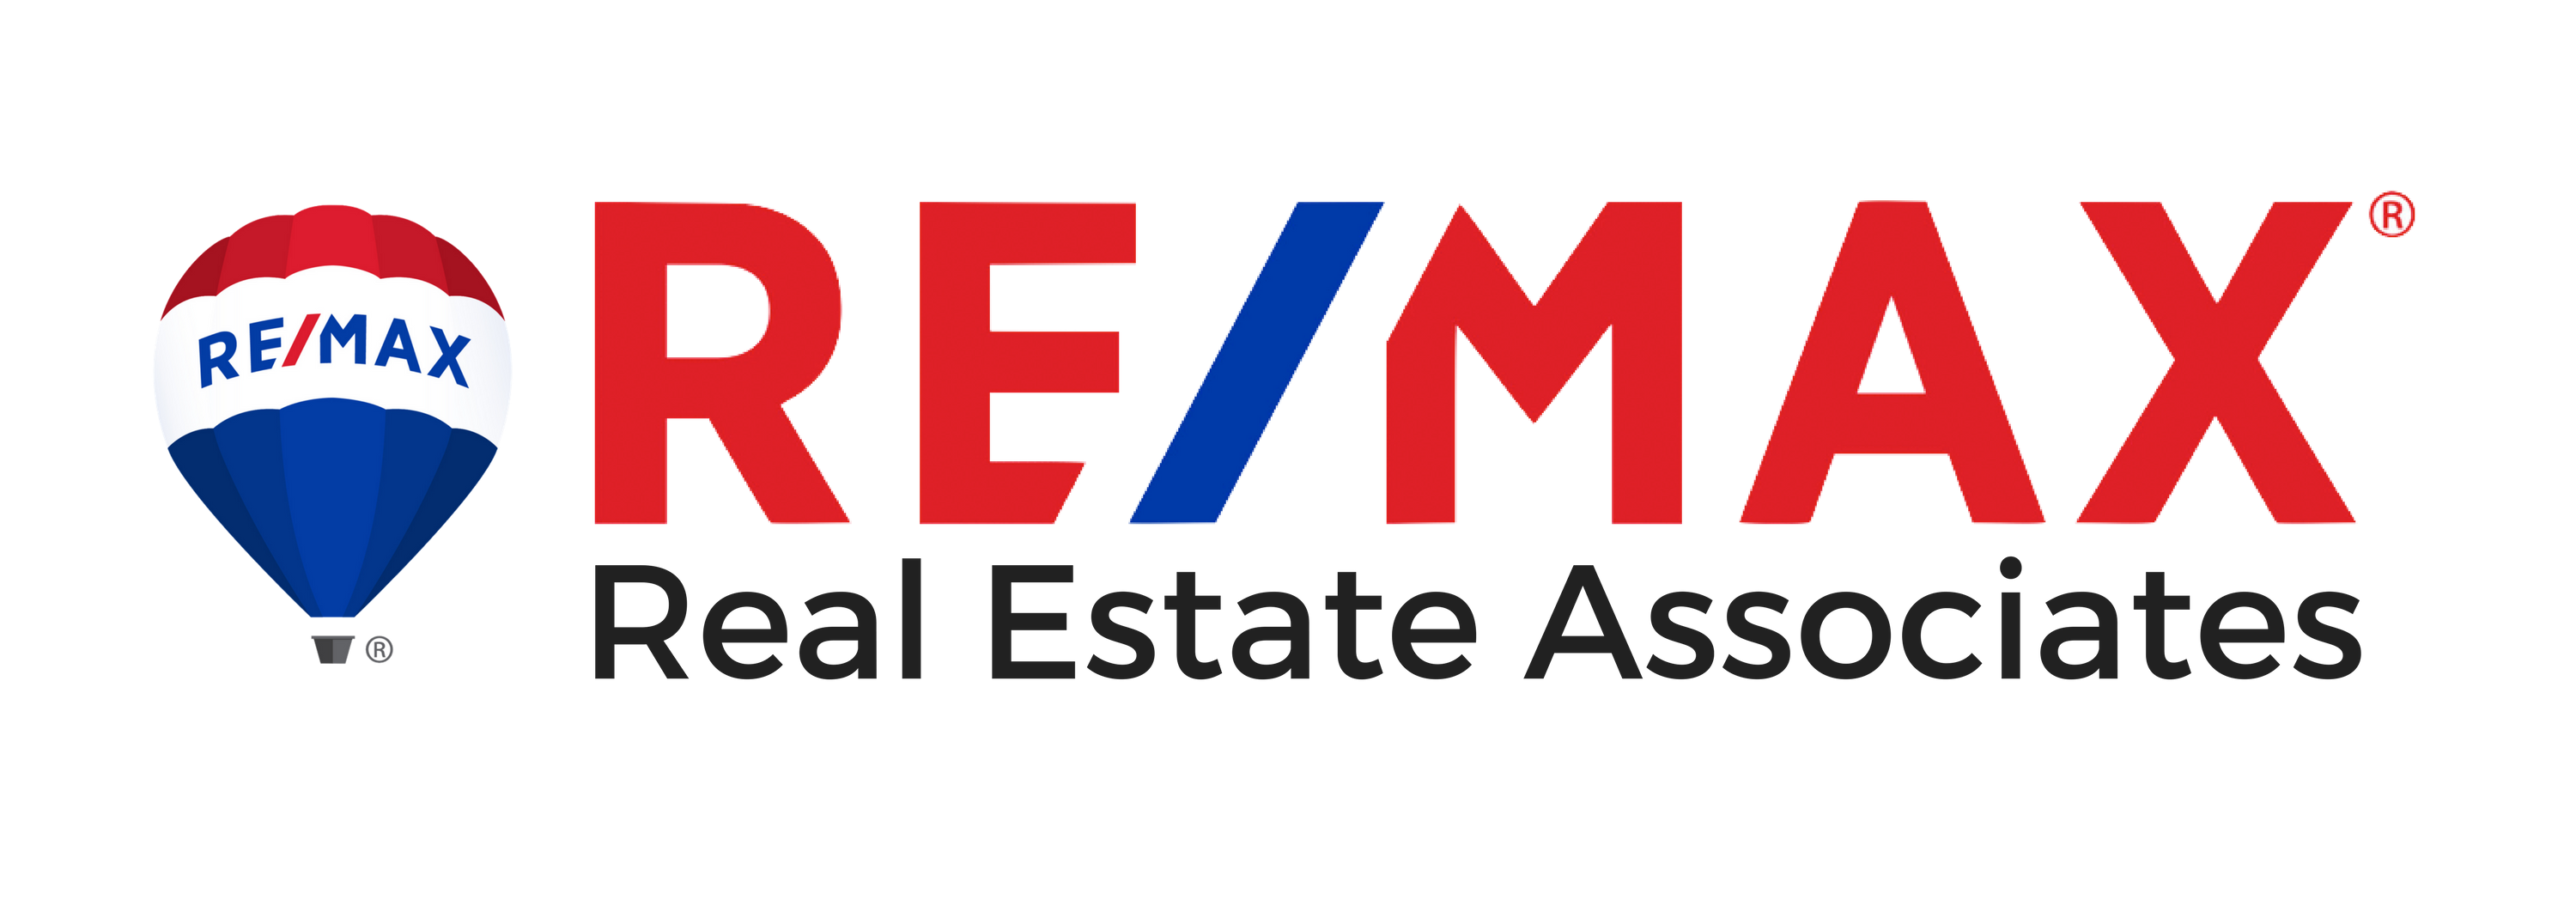 Remax Bend Oregon